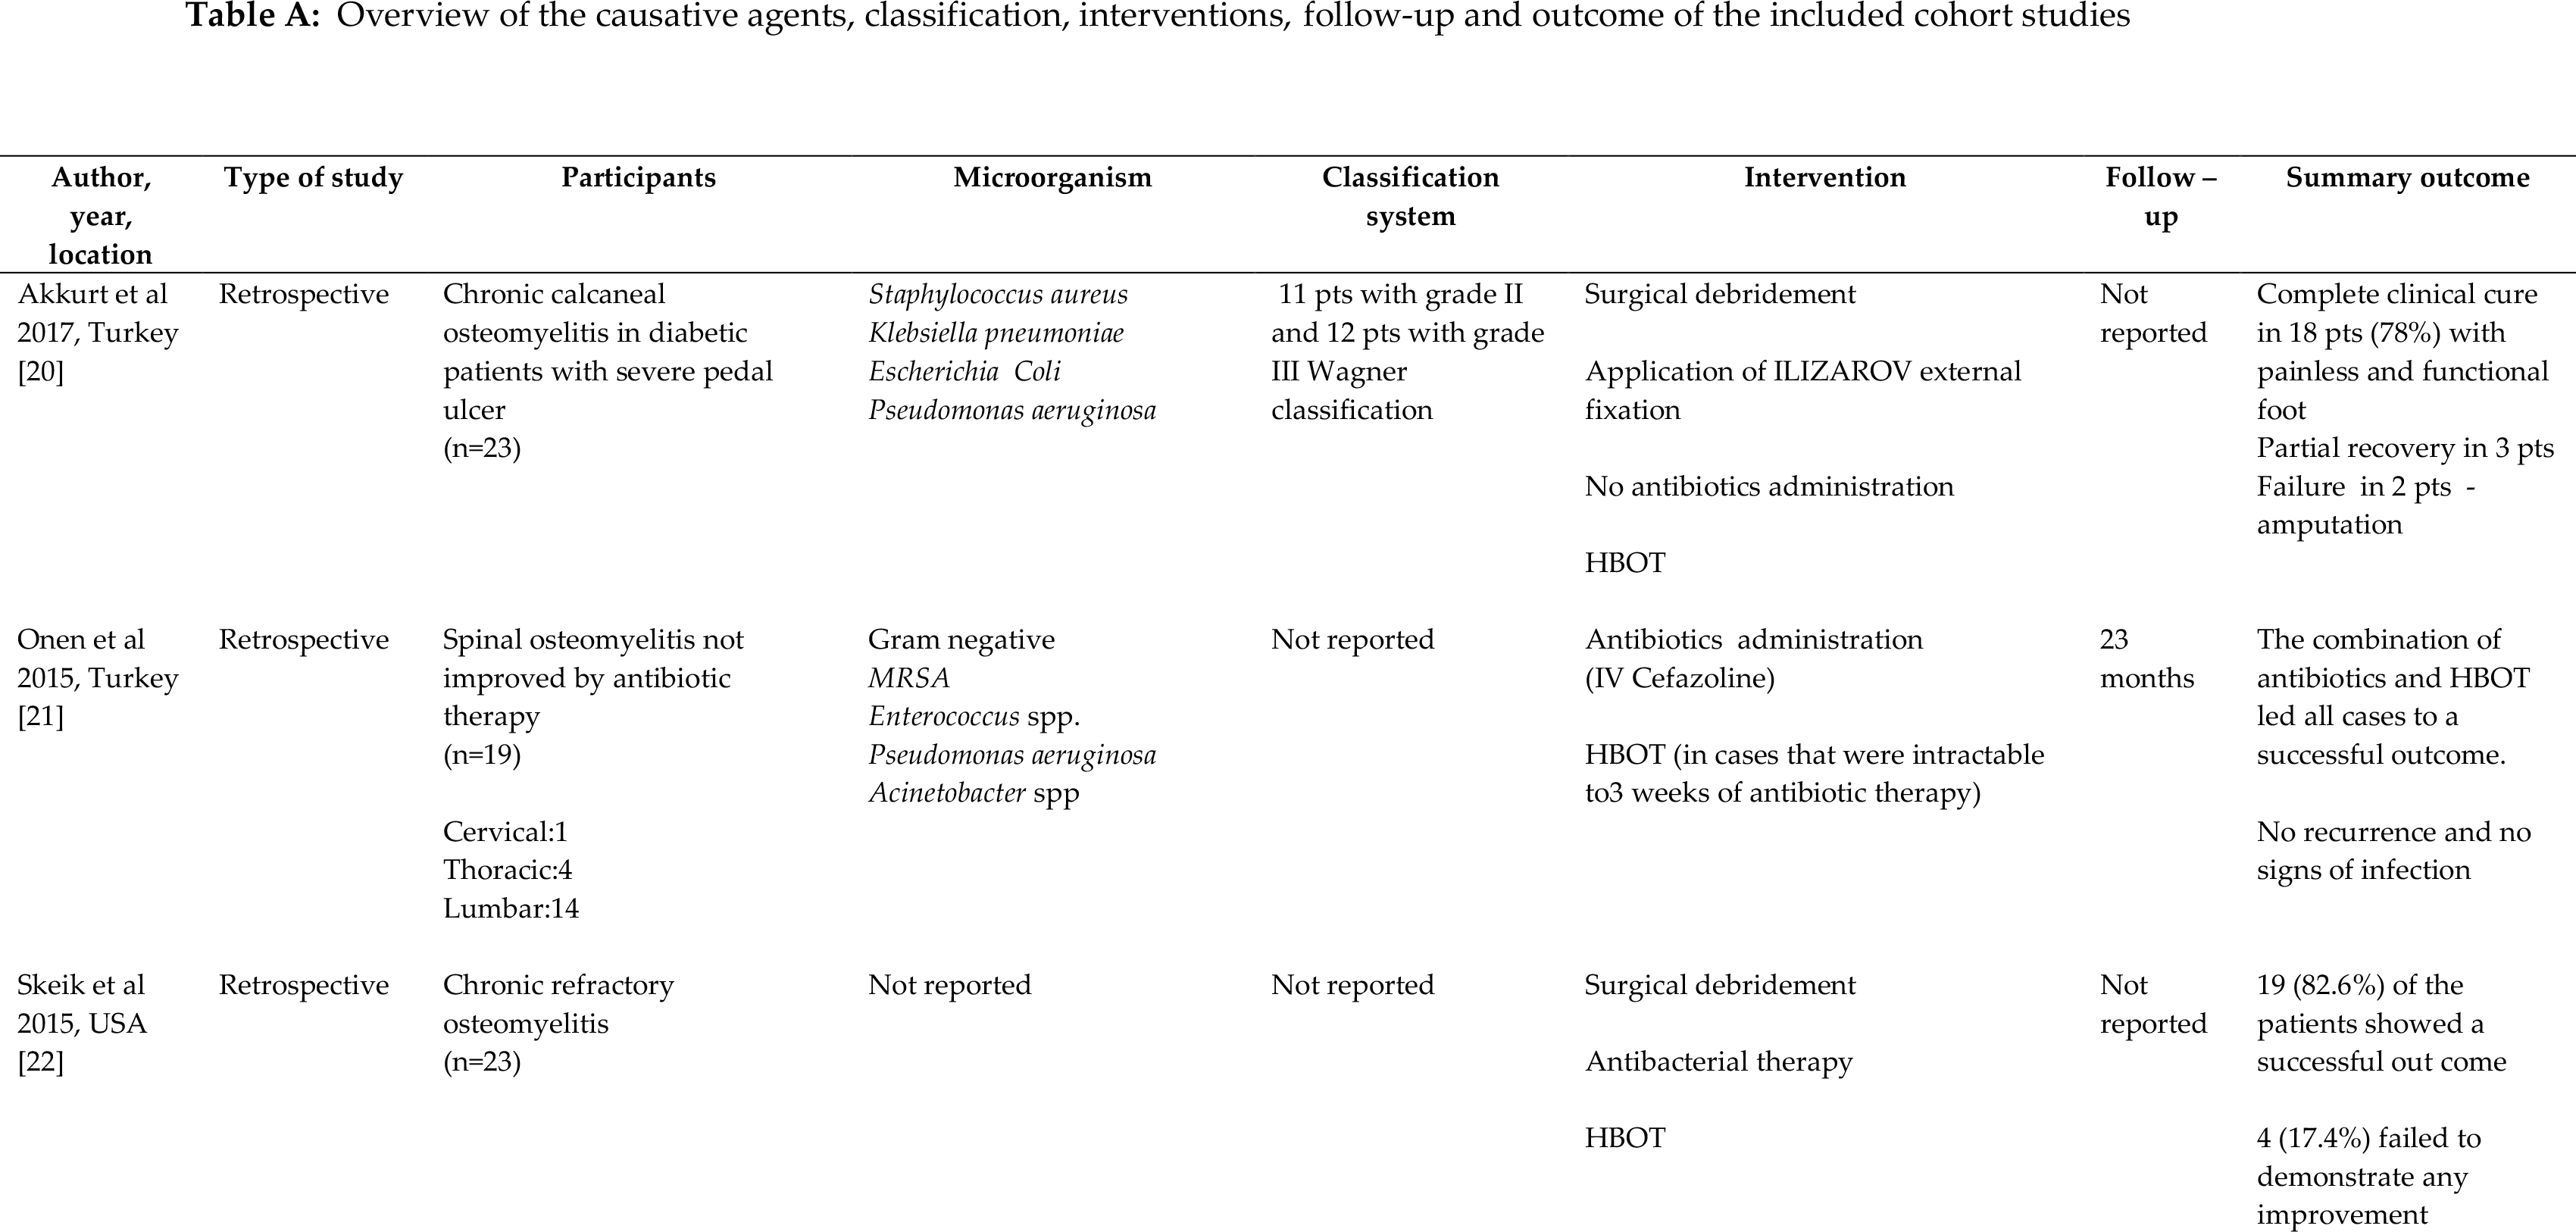 Overview of the causative agents, classification, interventions, follow-up and outcome of the included cohort studies